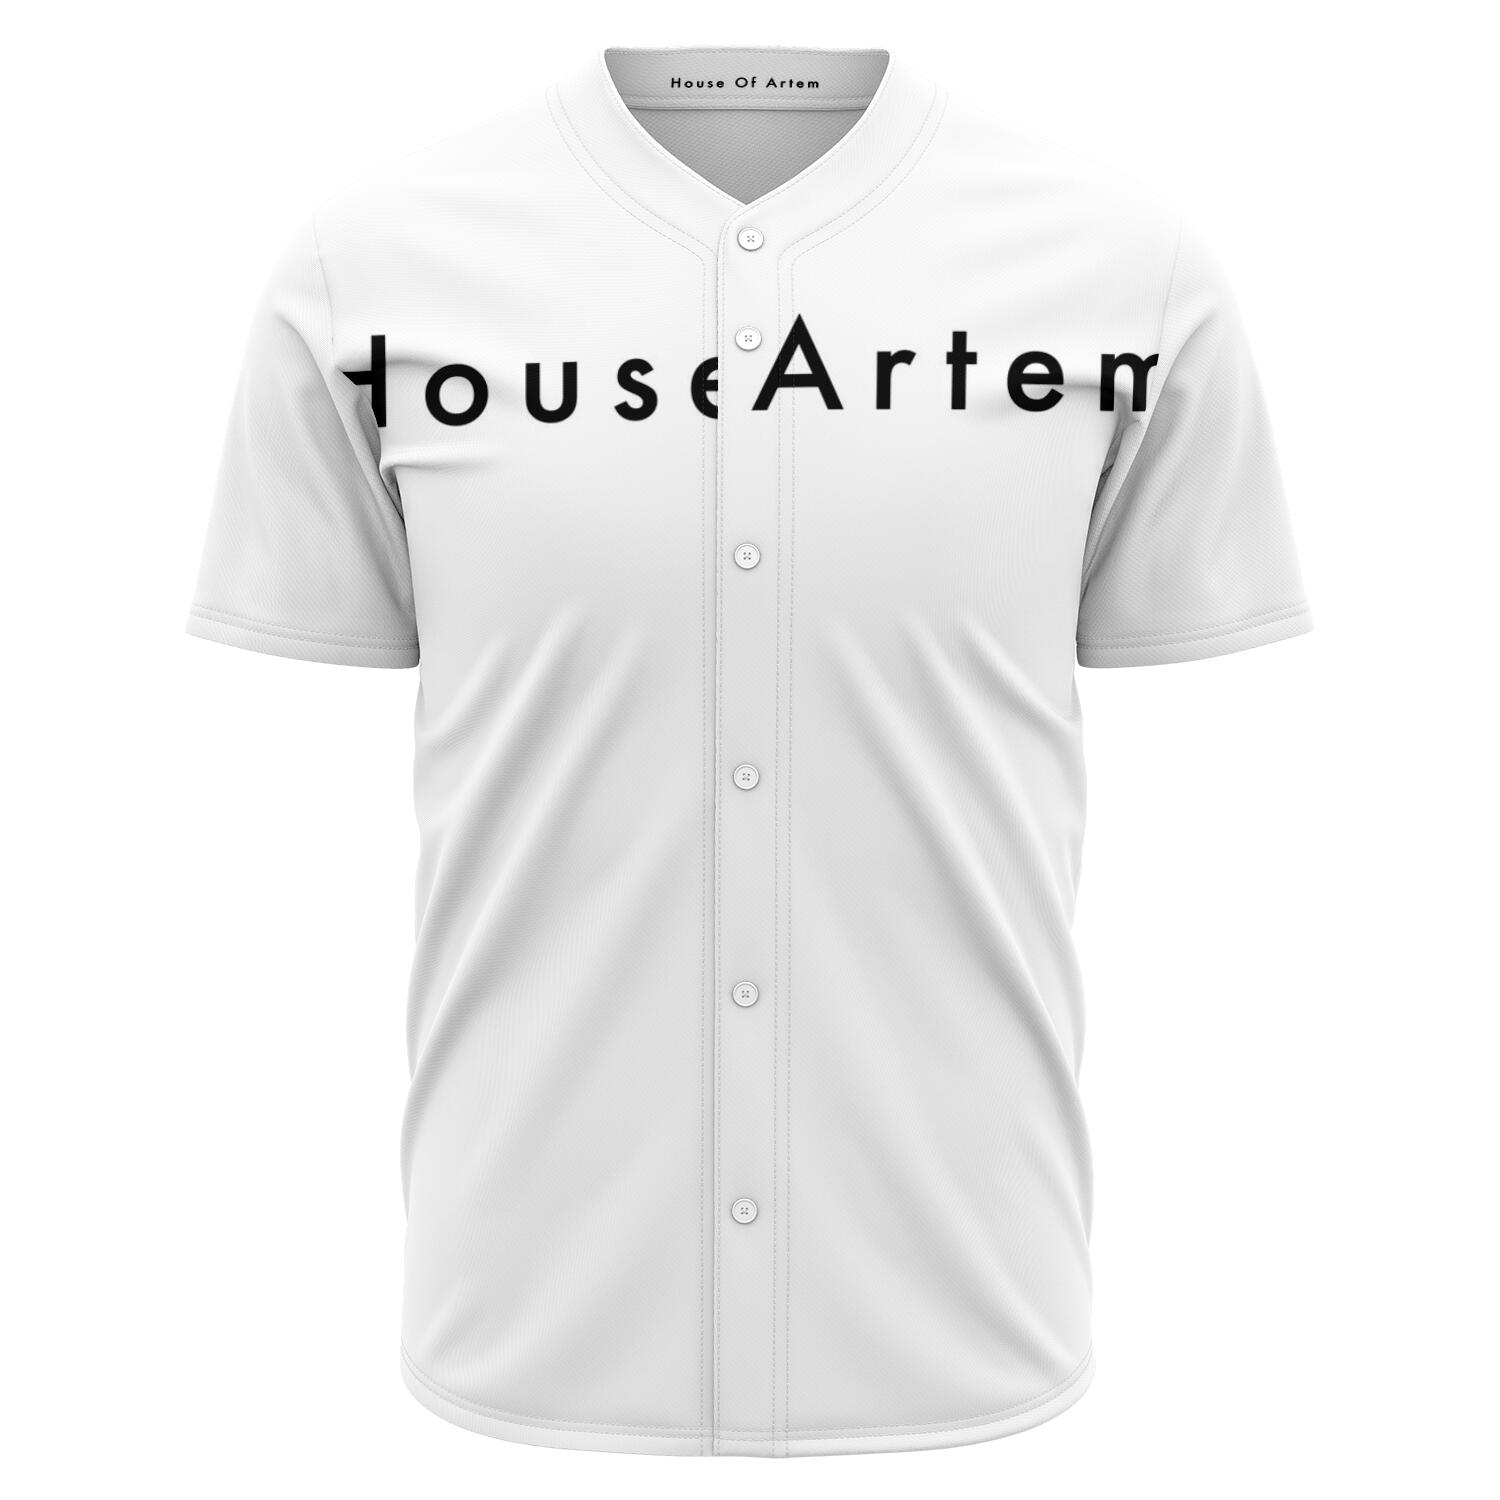 House Of Artem Original White Baseball Jersey